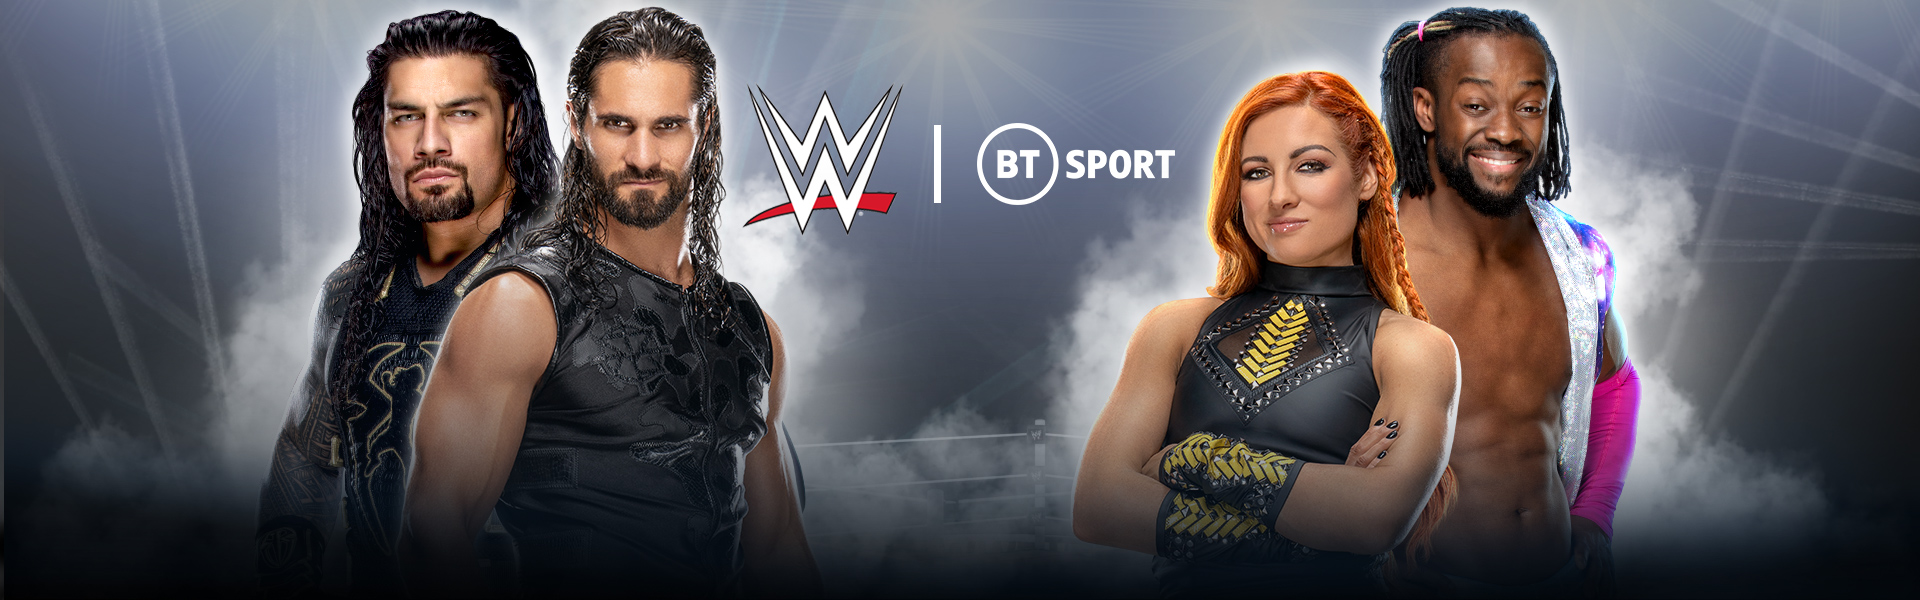 WWE moves to BT Sport